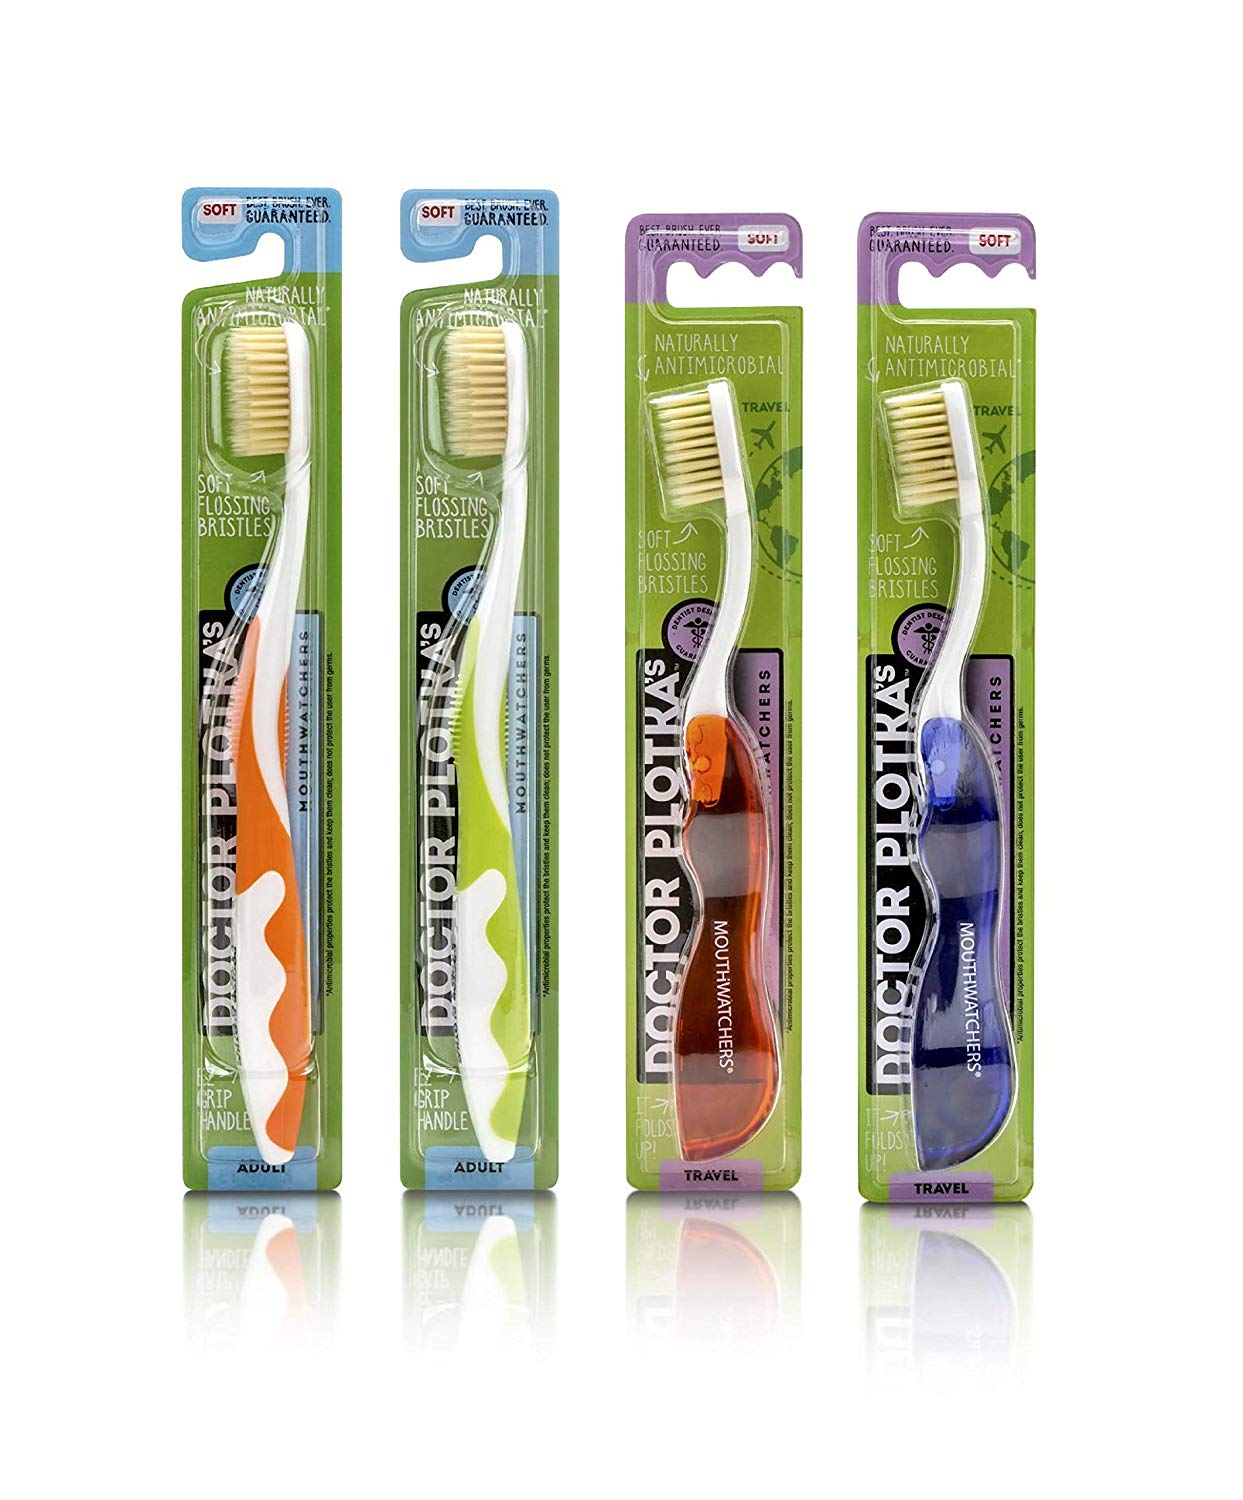 2 Adult Manual Toothbrushes and 2 Travel Toothbrushes